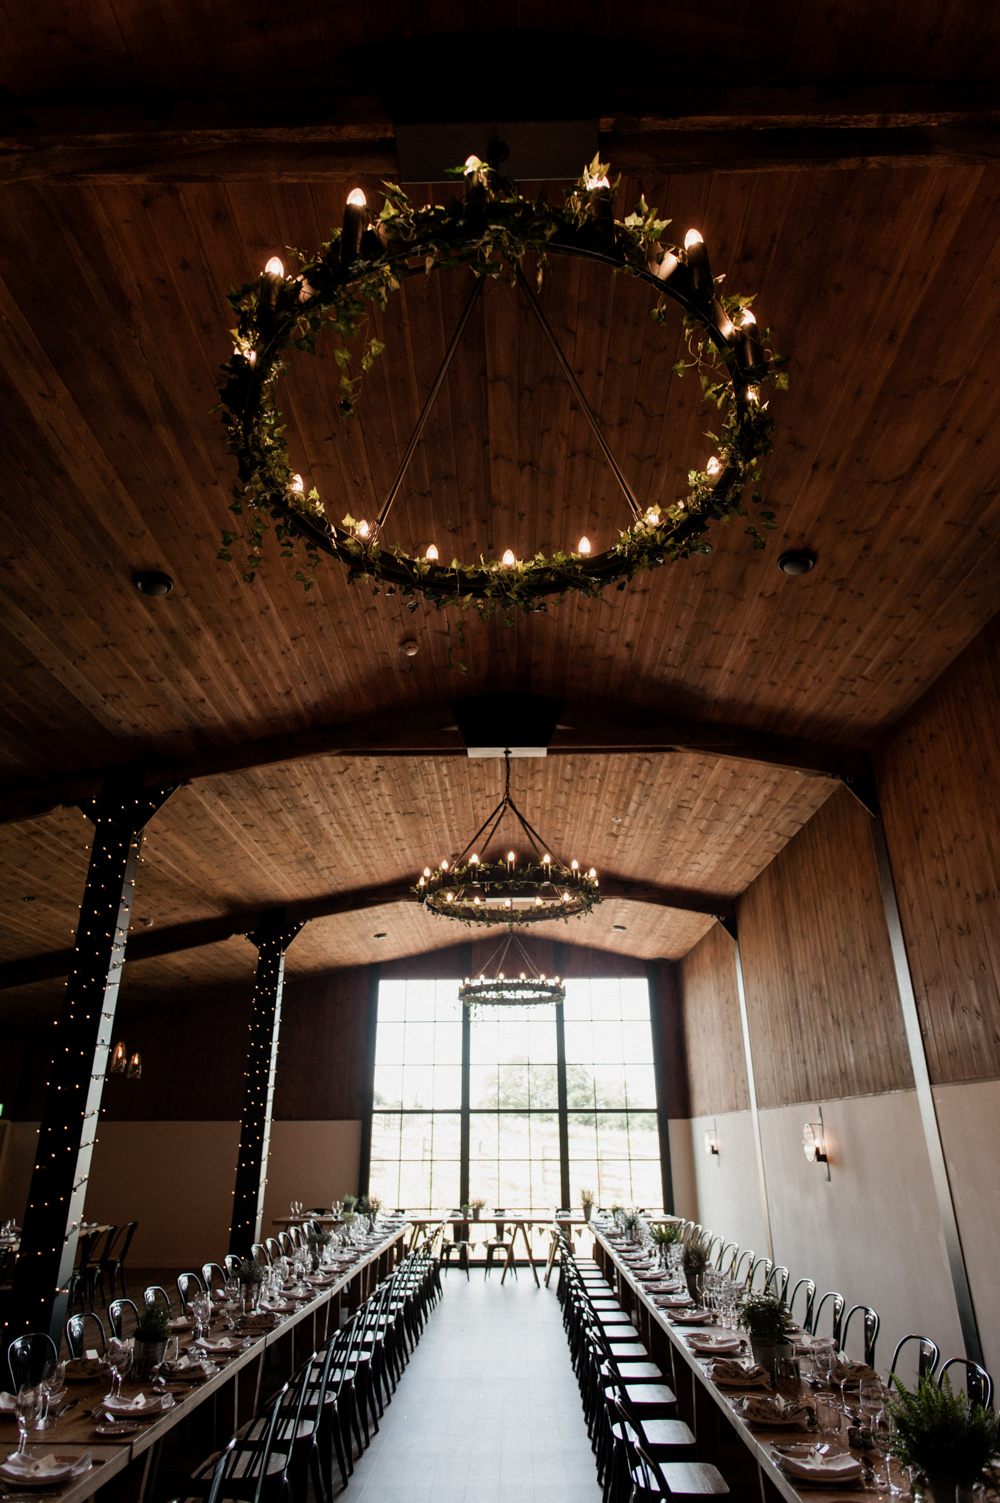 The Stable Barn Trestle Table Wedding Breakfast set up at Upton Barn